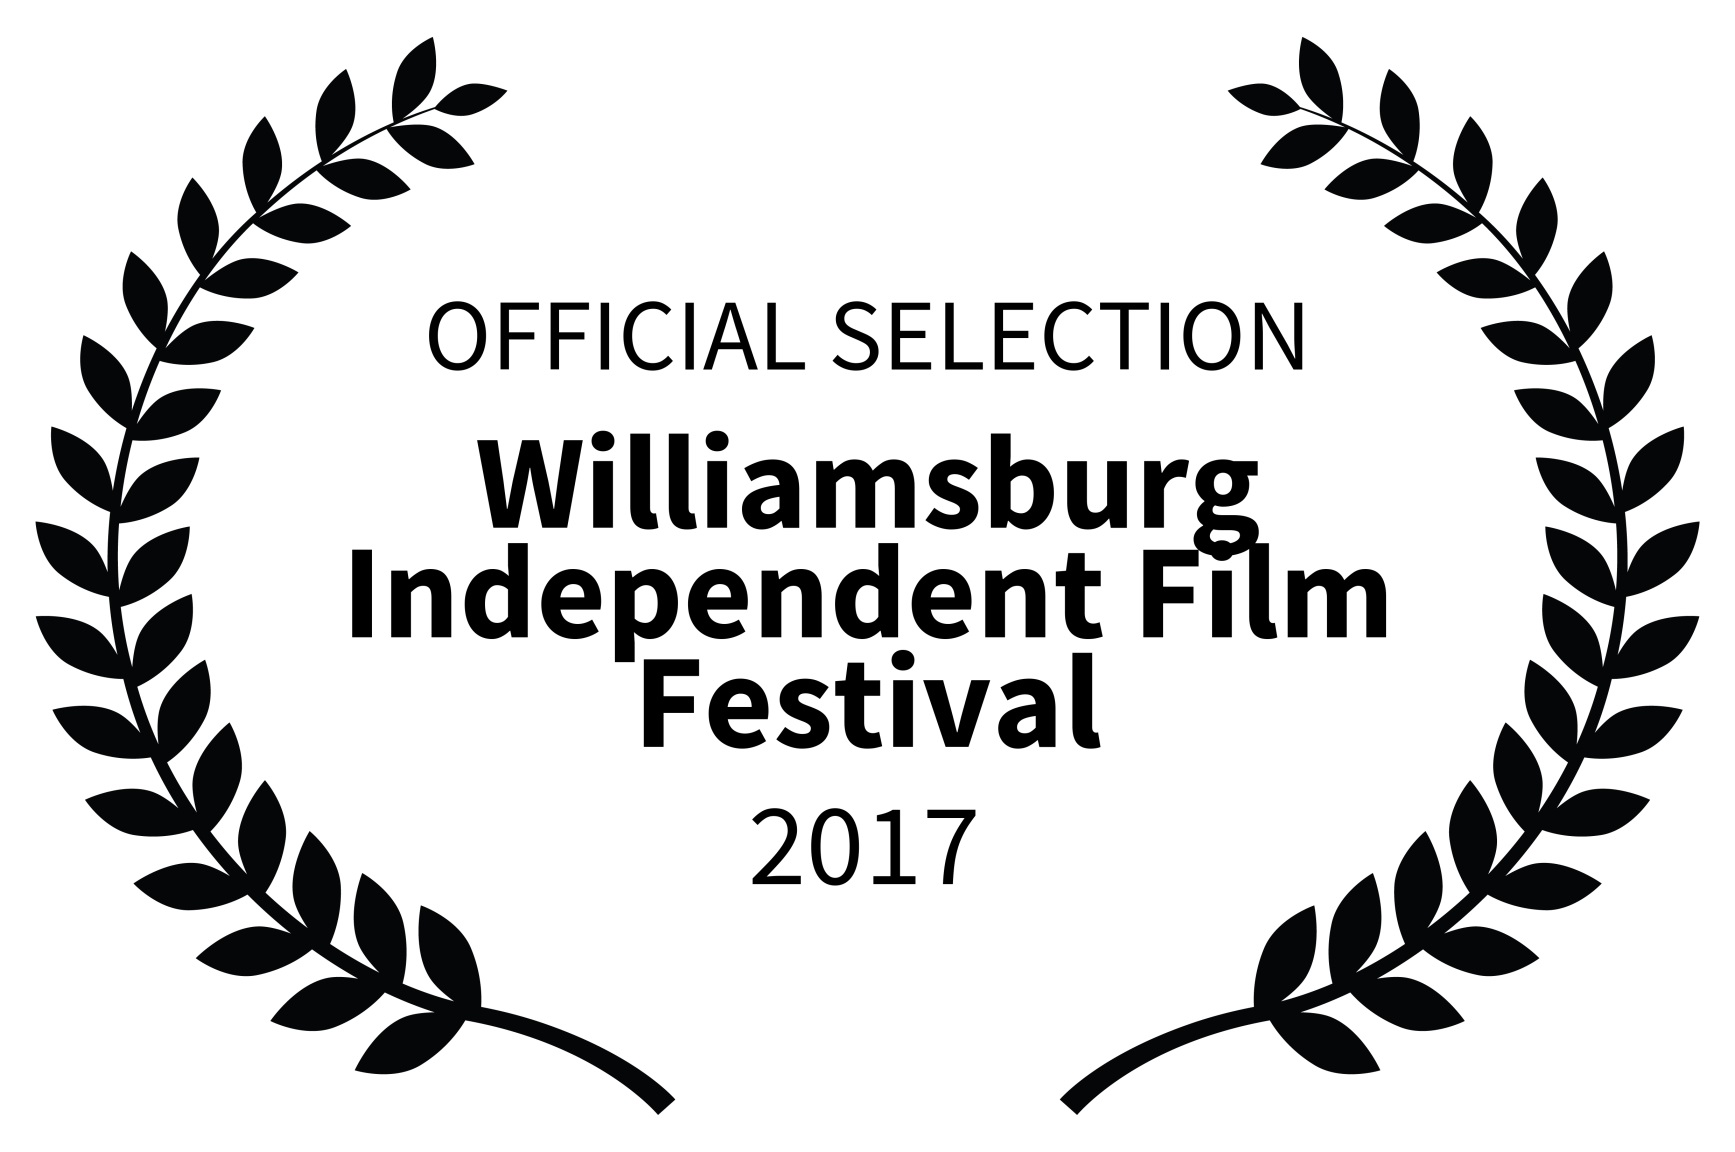 OFFICIAL SELECTION - Williamsburg Independent Film Festival - 2017 (2)